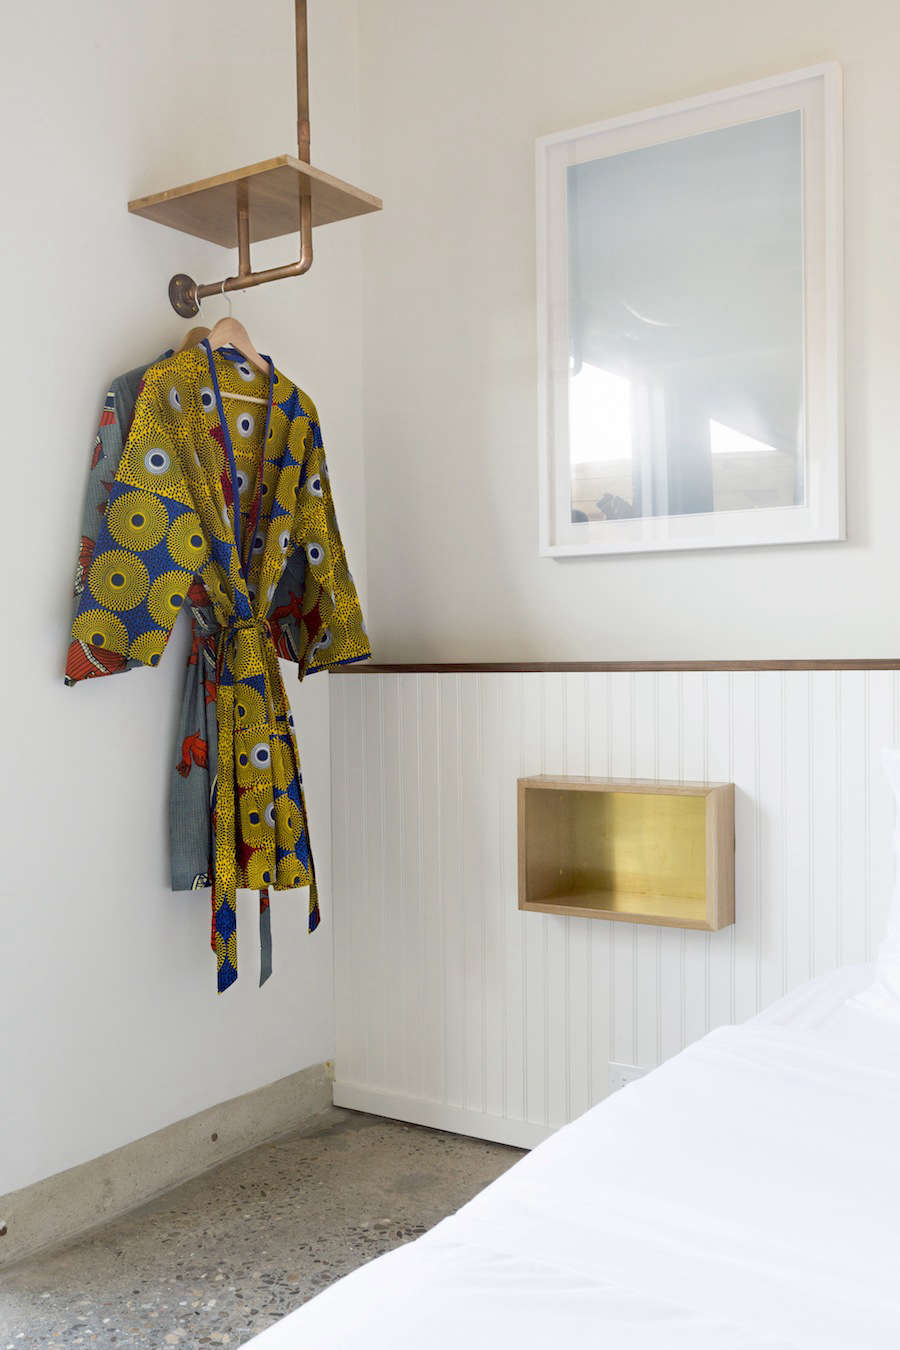 Custom robes are made from deadstock African fabrics. The side-table nooks and shelving are hand-made from American white oak with brass details.